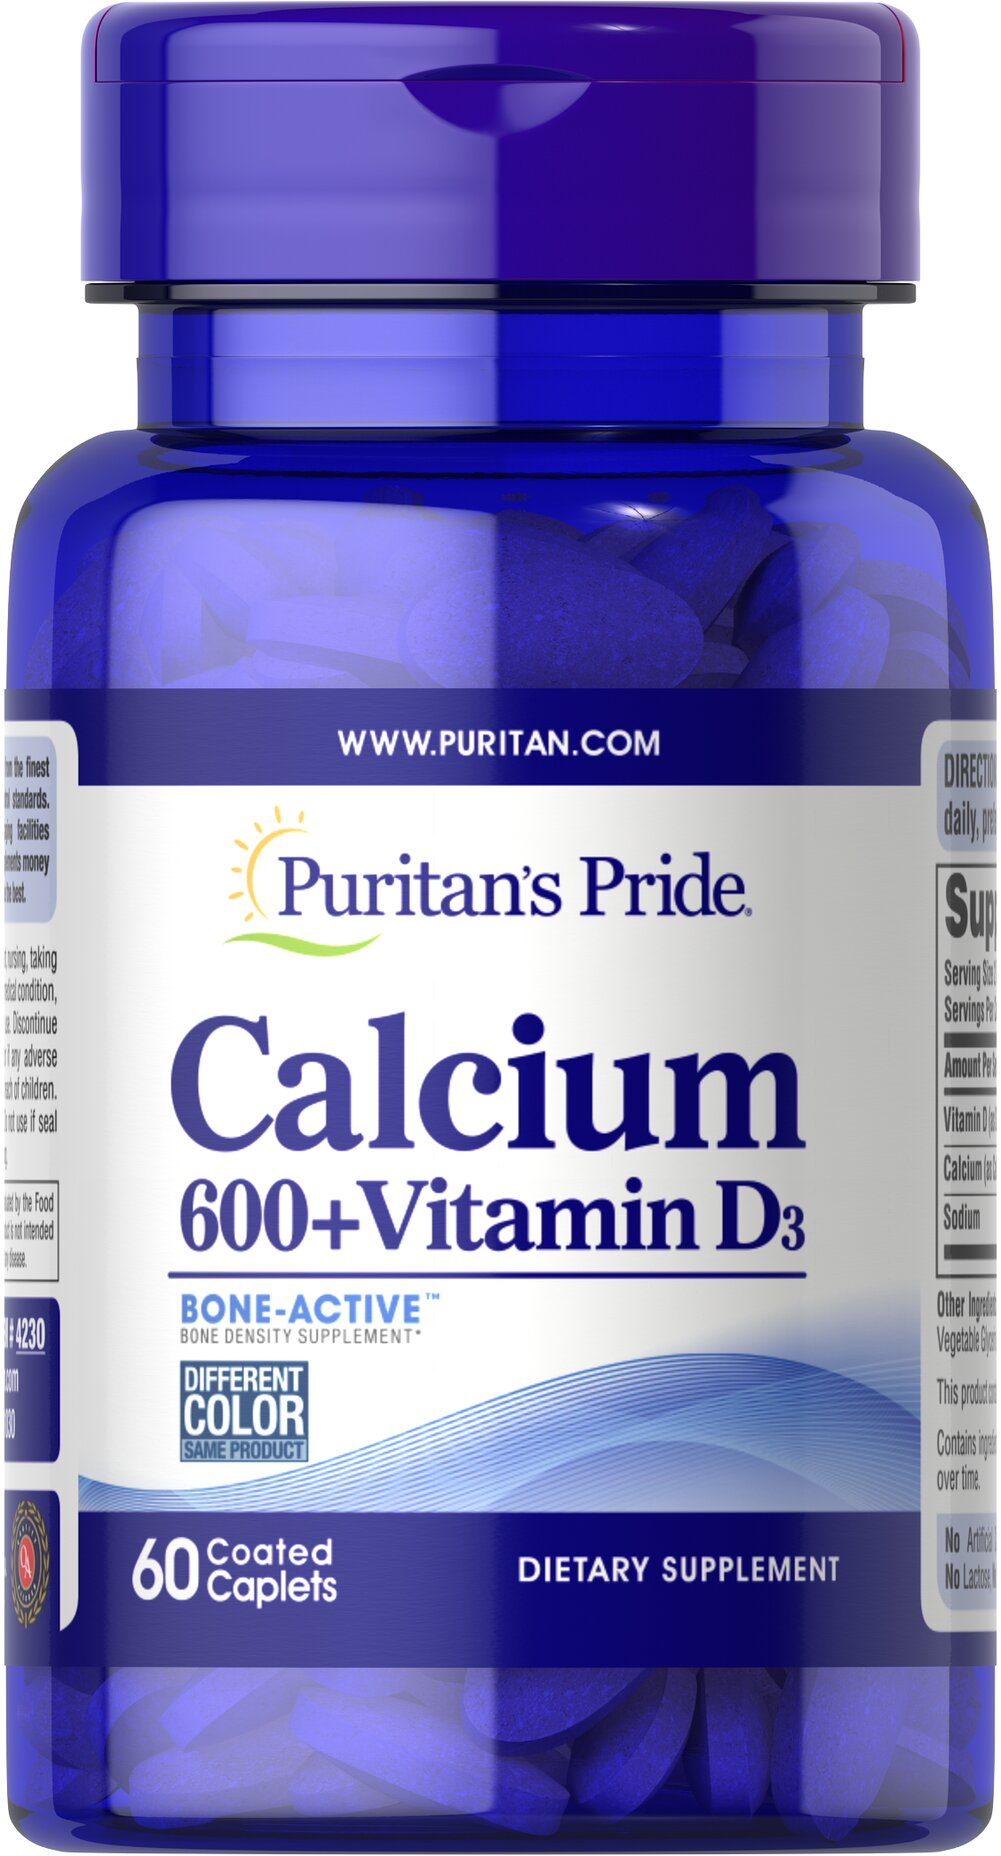 Calcium Carbonate 600 mg + Vitamin D 250 IU  60 Caplets 600 mg $6.99